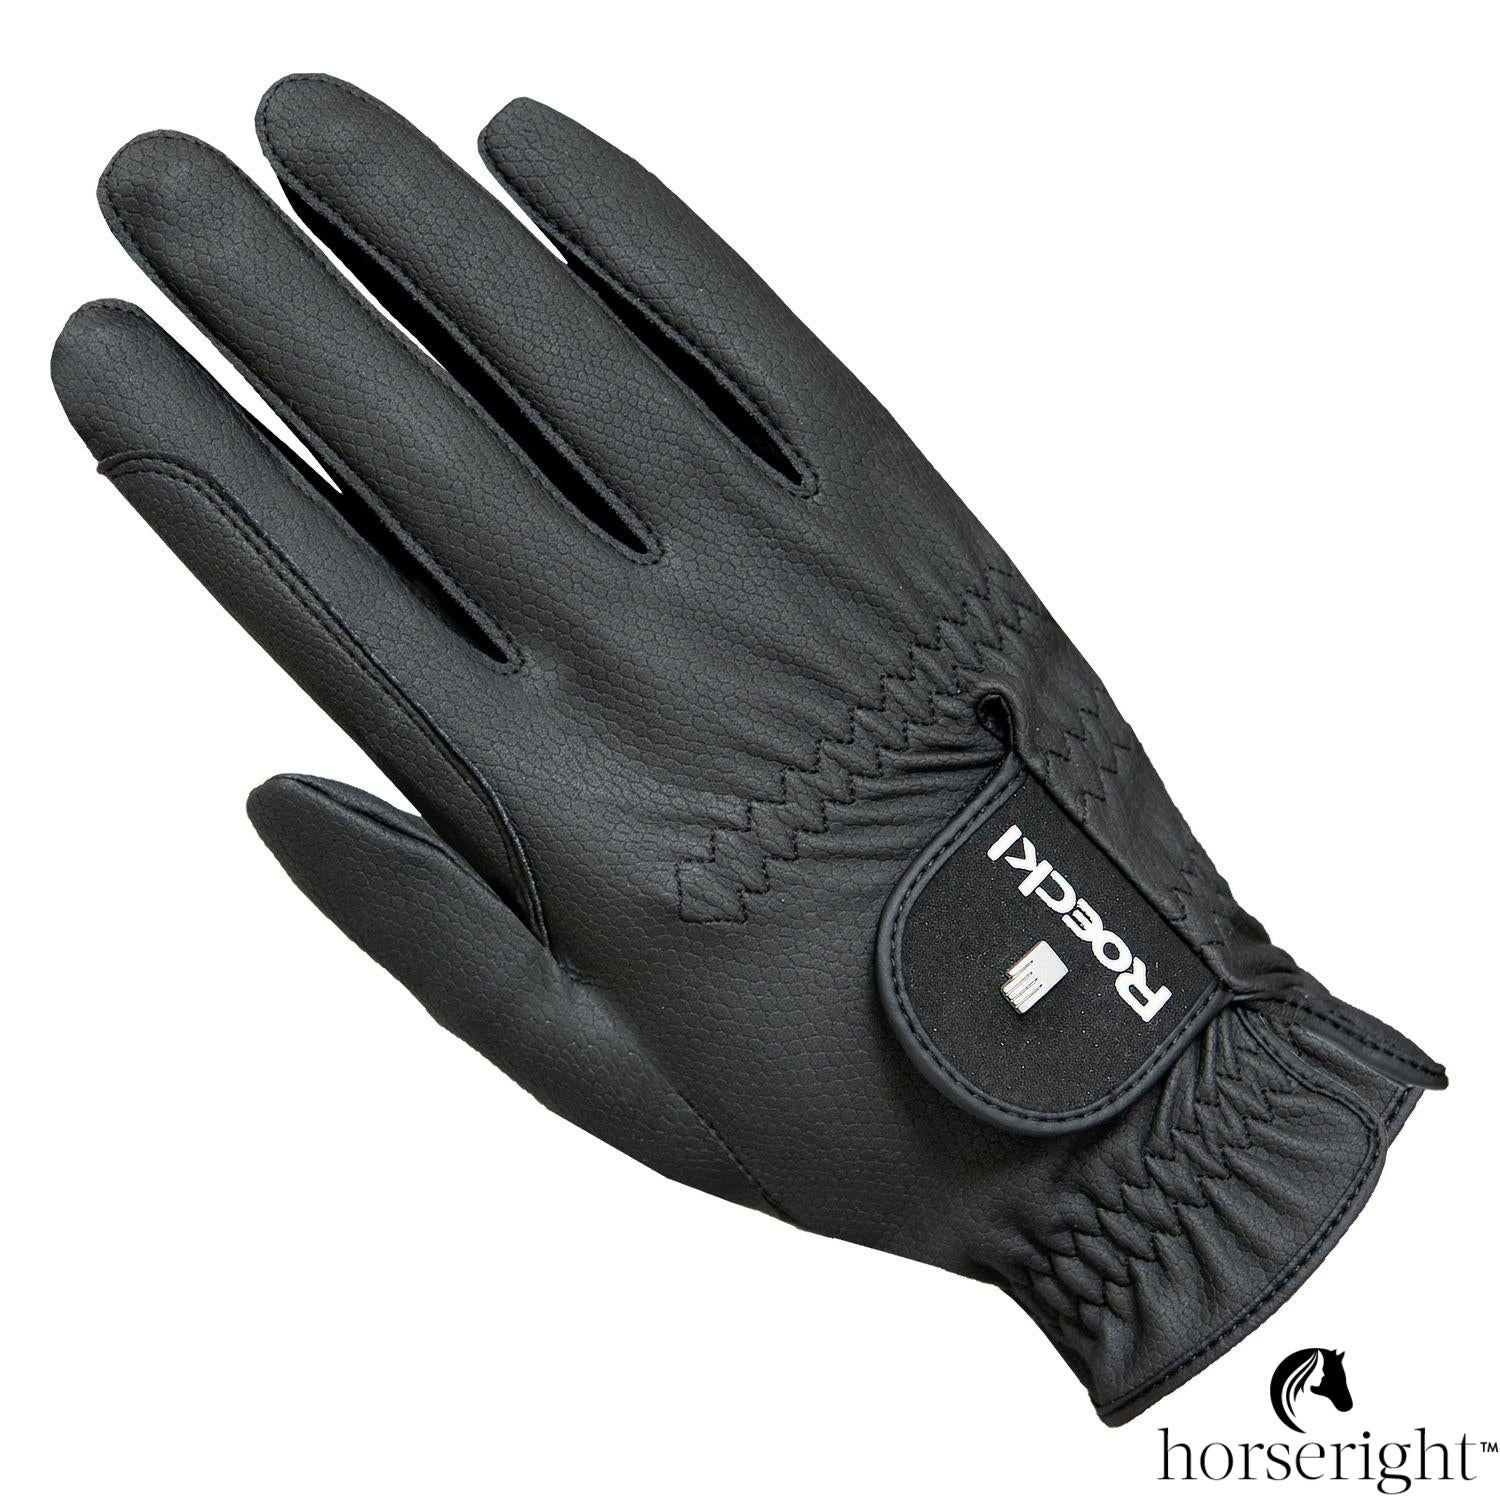 Roeckl Roeck-Grip Pro Riding Gloves